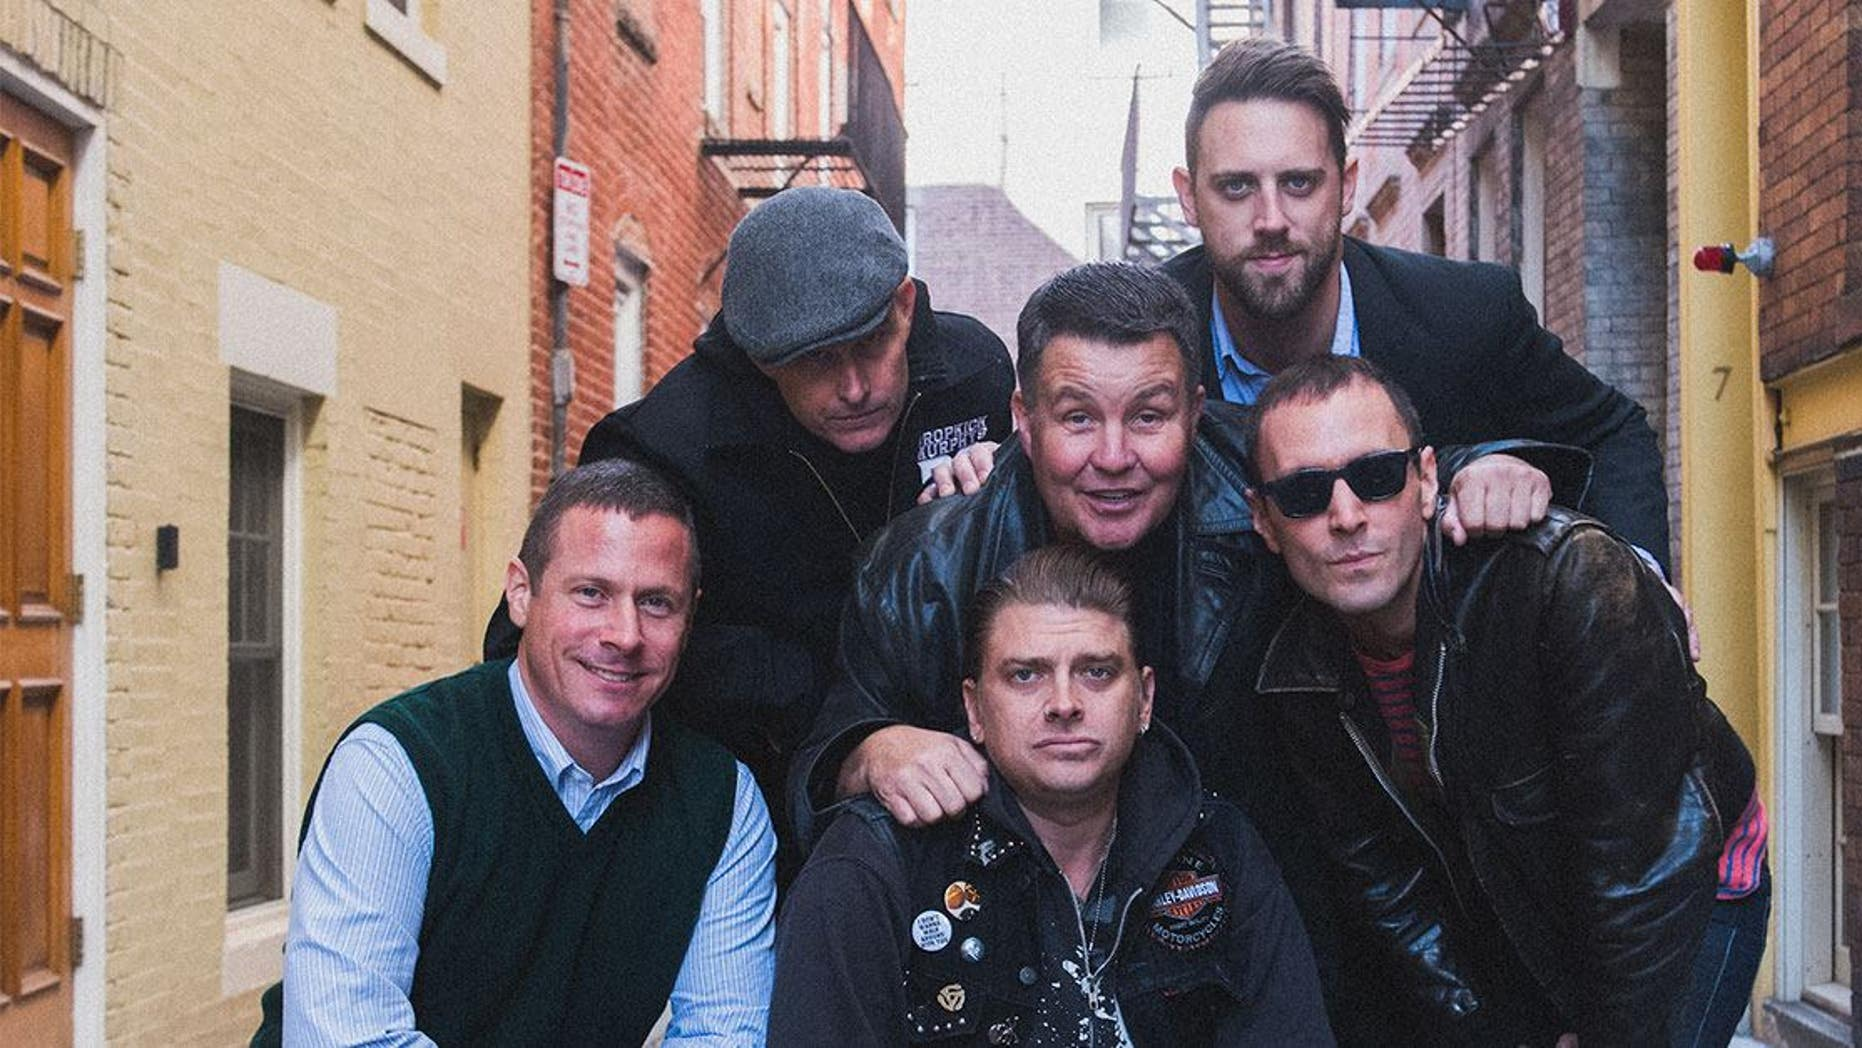 Ken Casey, center, and the other members of Dropkick Murphys. (Facebook)